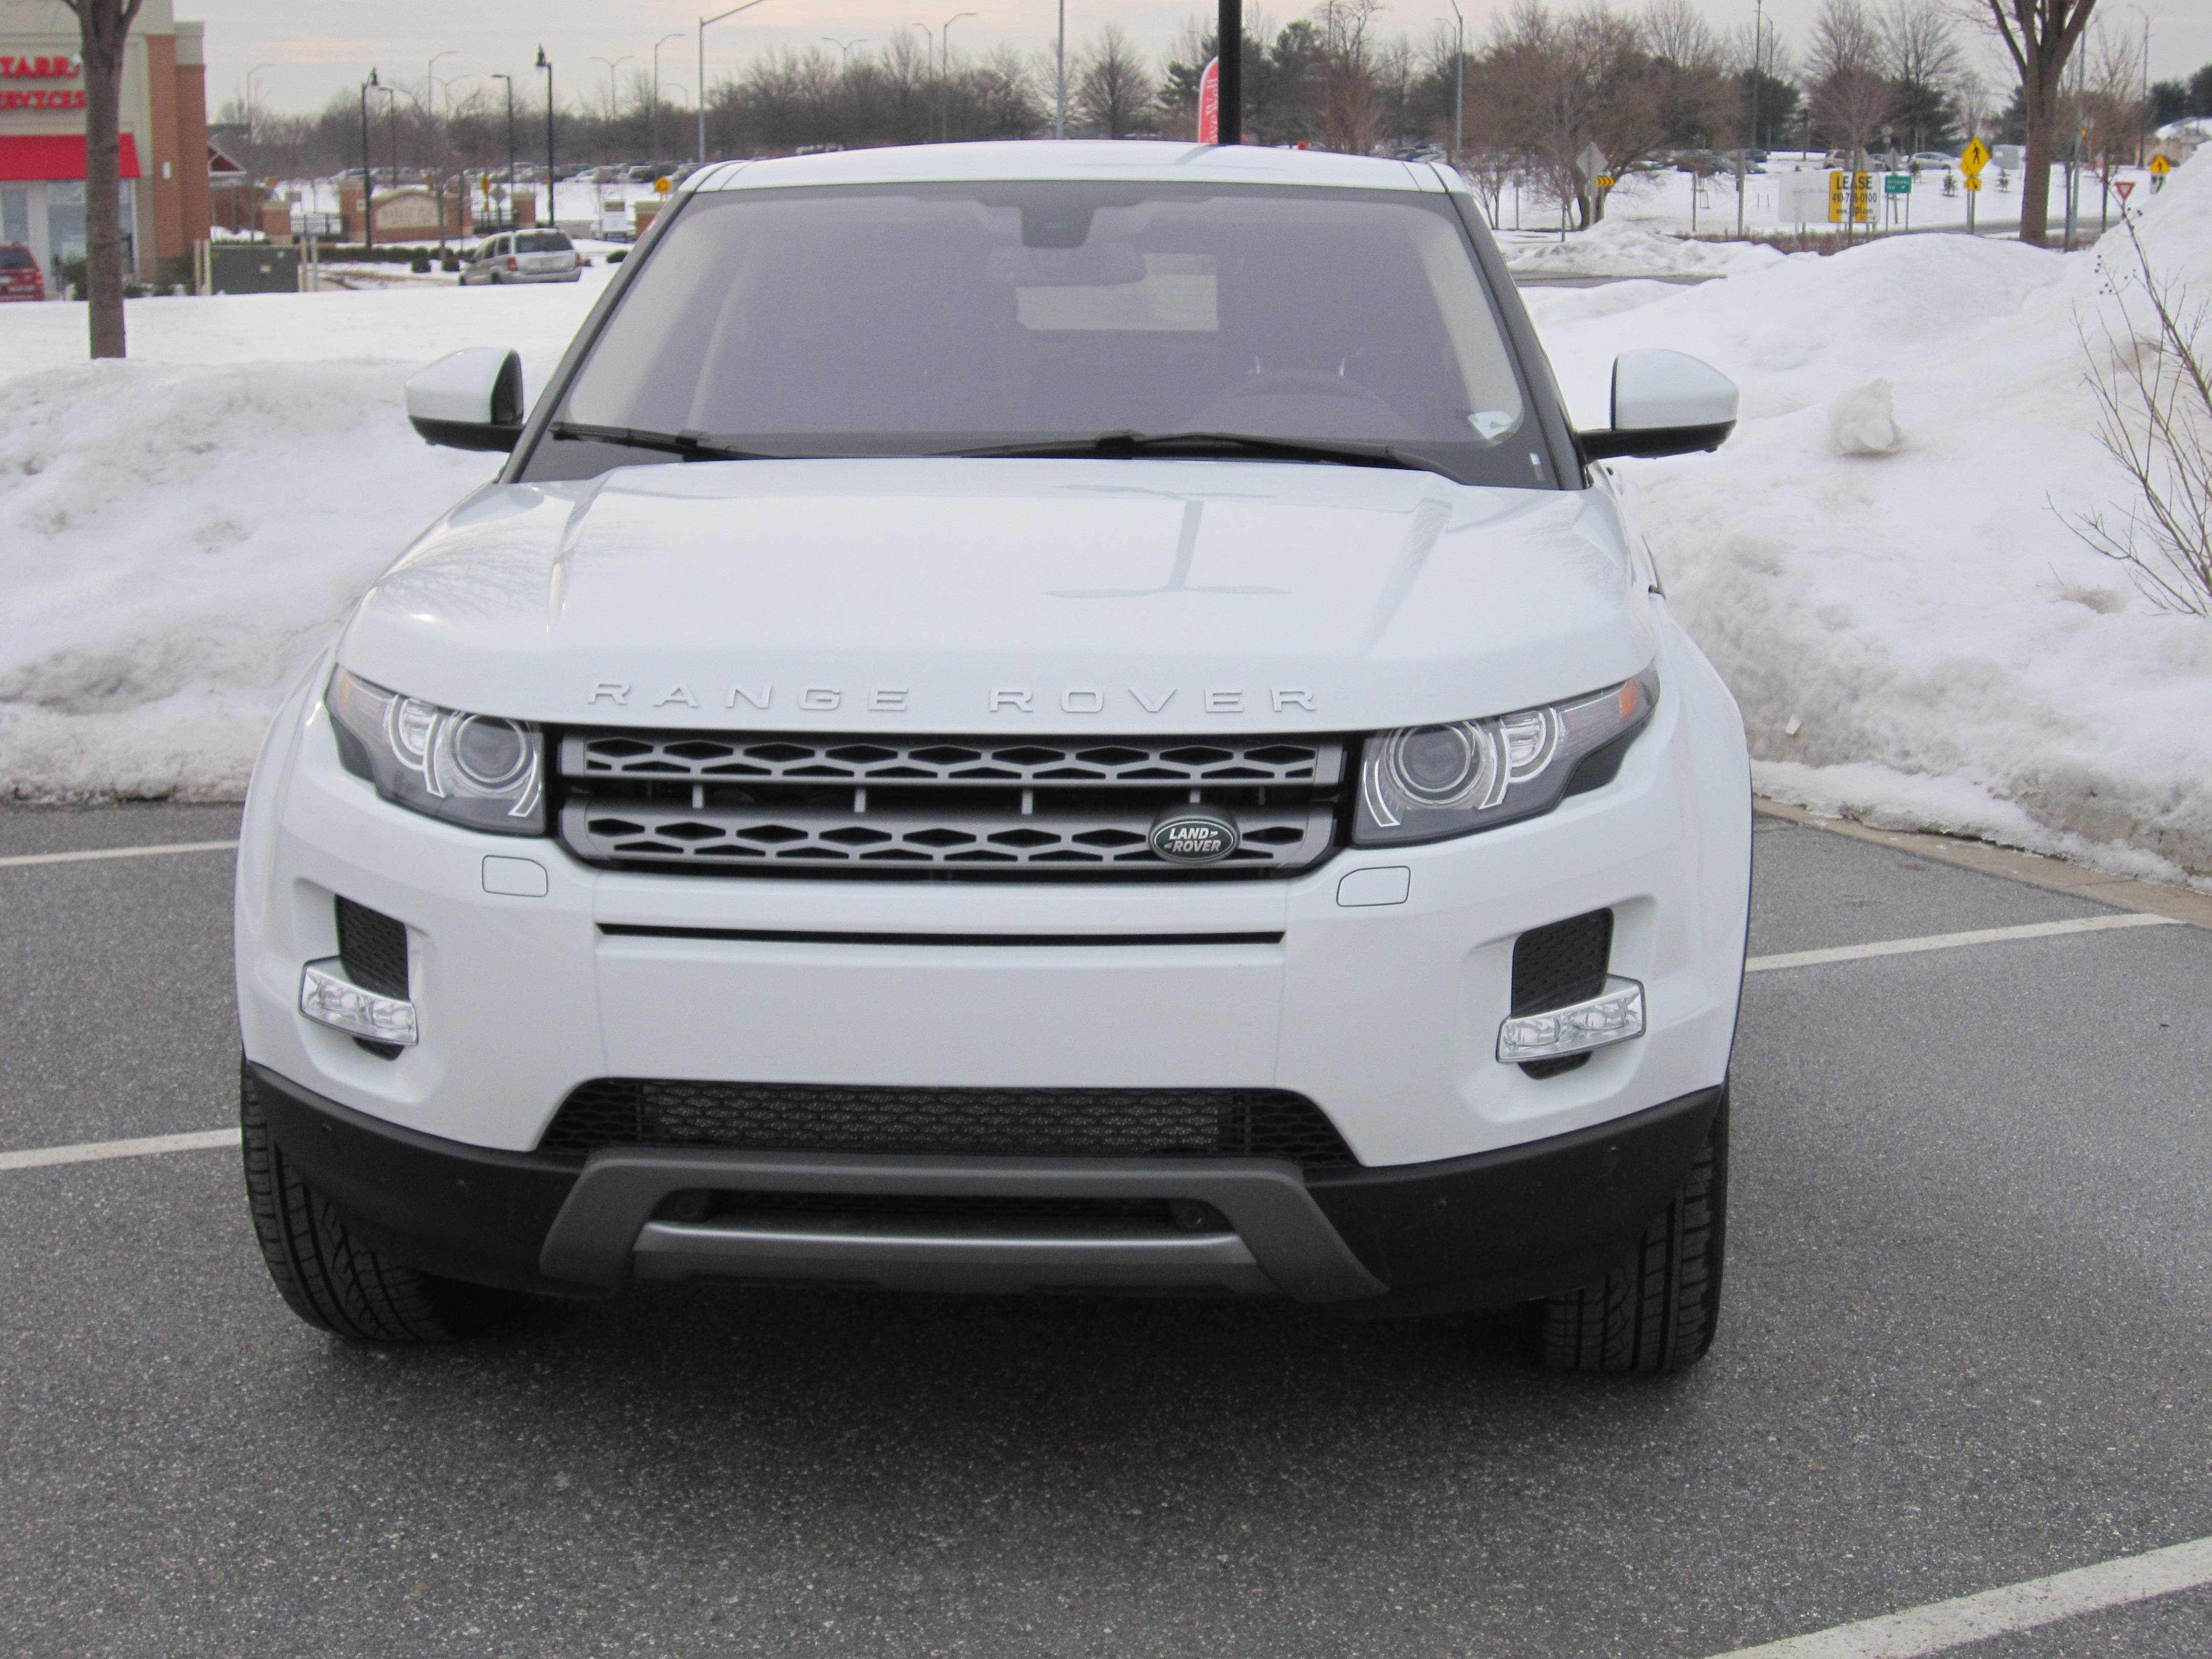 2015 range rover evoque a small crossover high on style relatively easy on gas wtop. Black Bedroom Furniture Sets. Home Design Ideas